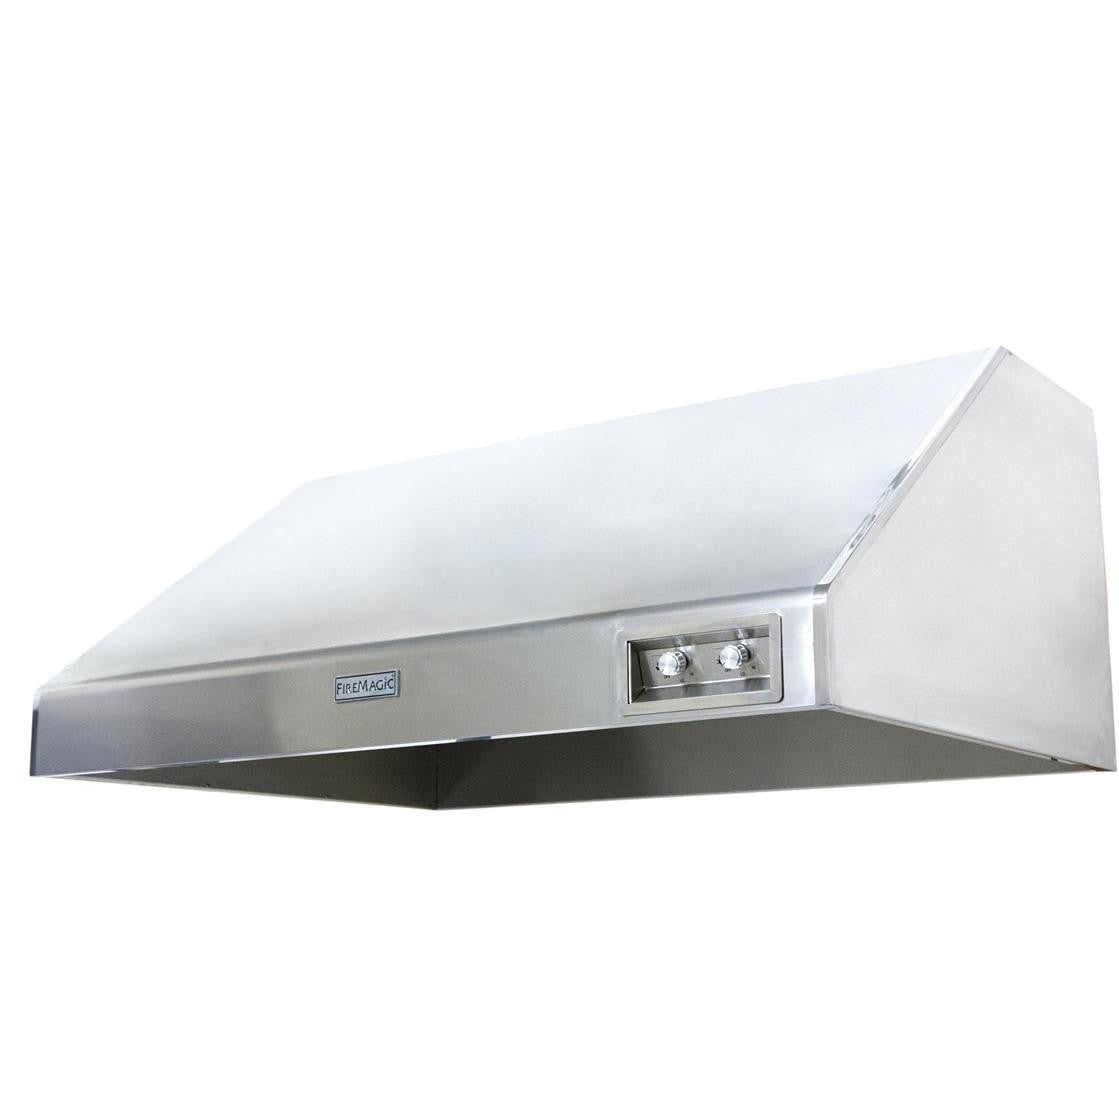 Fire Magic 48-Inch Stainless Steel Outdoor Vent Hood - 1200 CFM 48-VH-6 - The Garden District